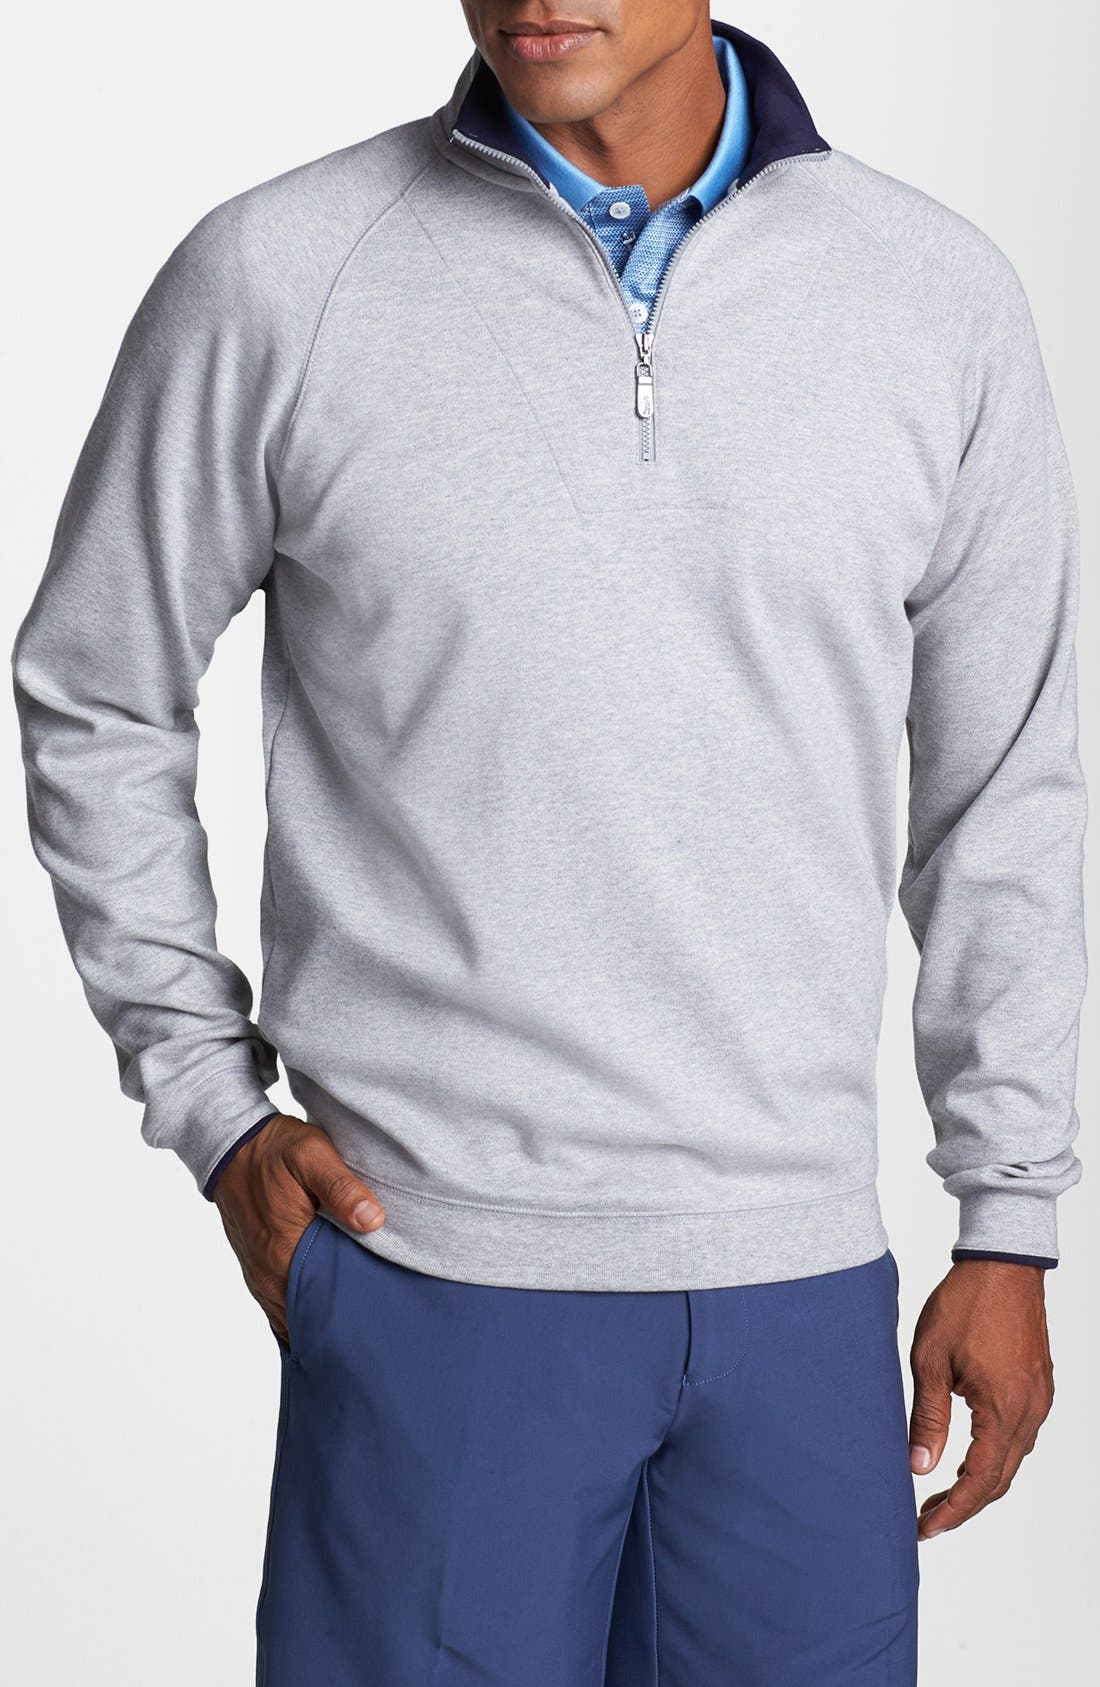 Alternate Image 1 Selected - Bobby Jones 'Competition' Half Zip Pullover